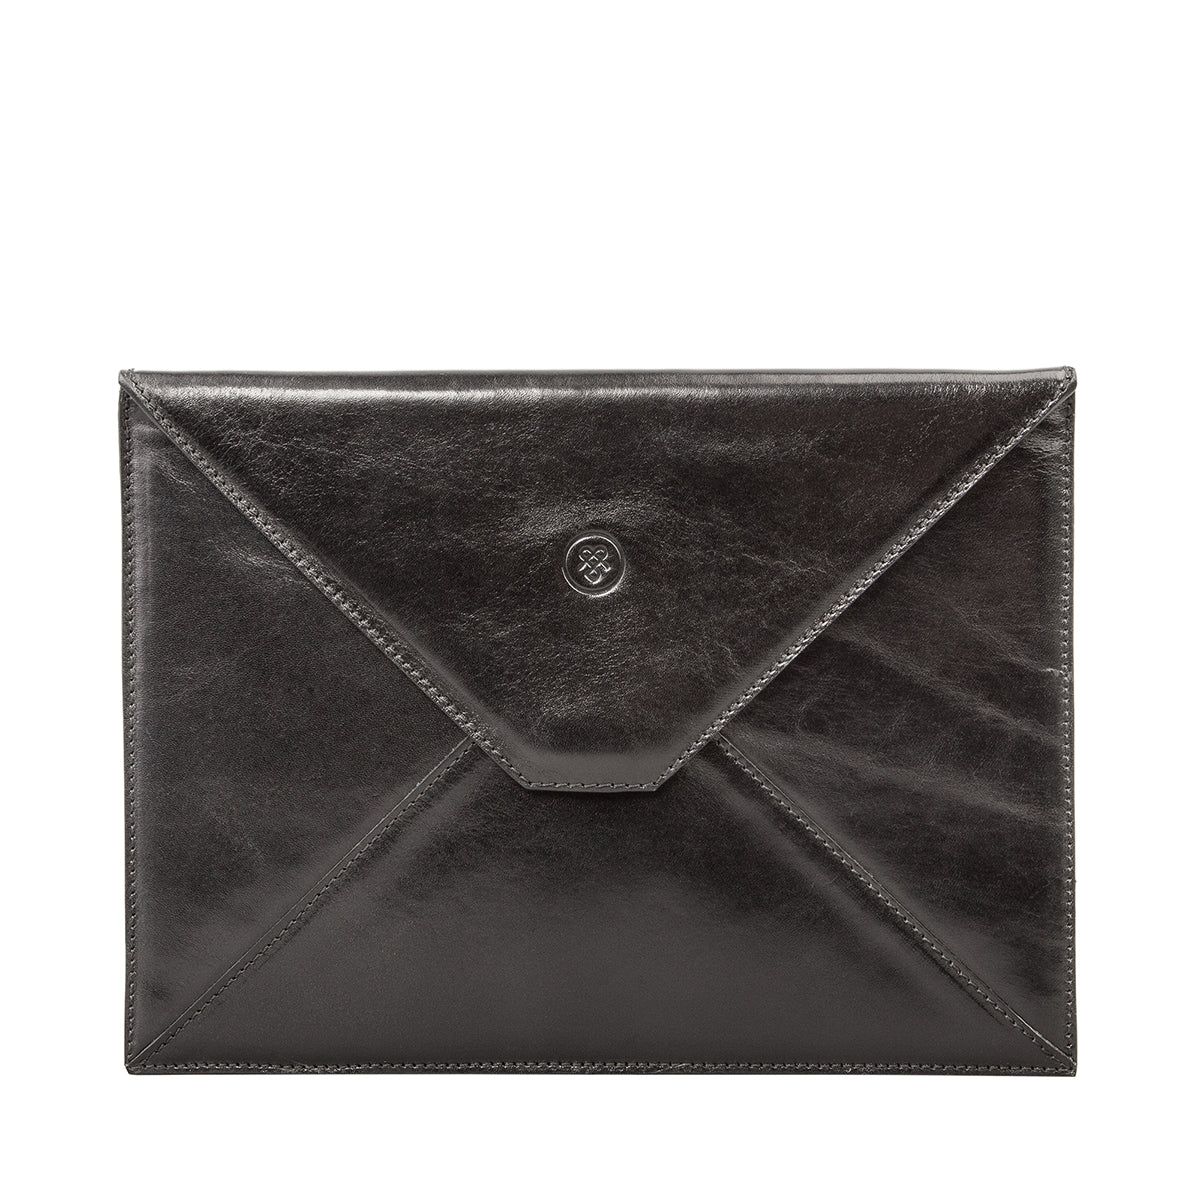 Image 1 of the 'Ettore' Black Veg-Tanned Leather Tablet Case